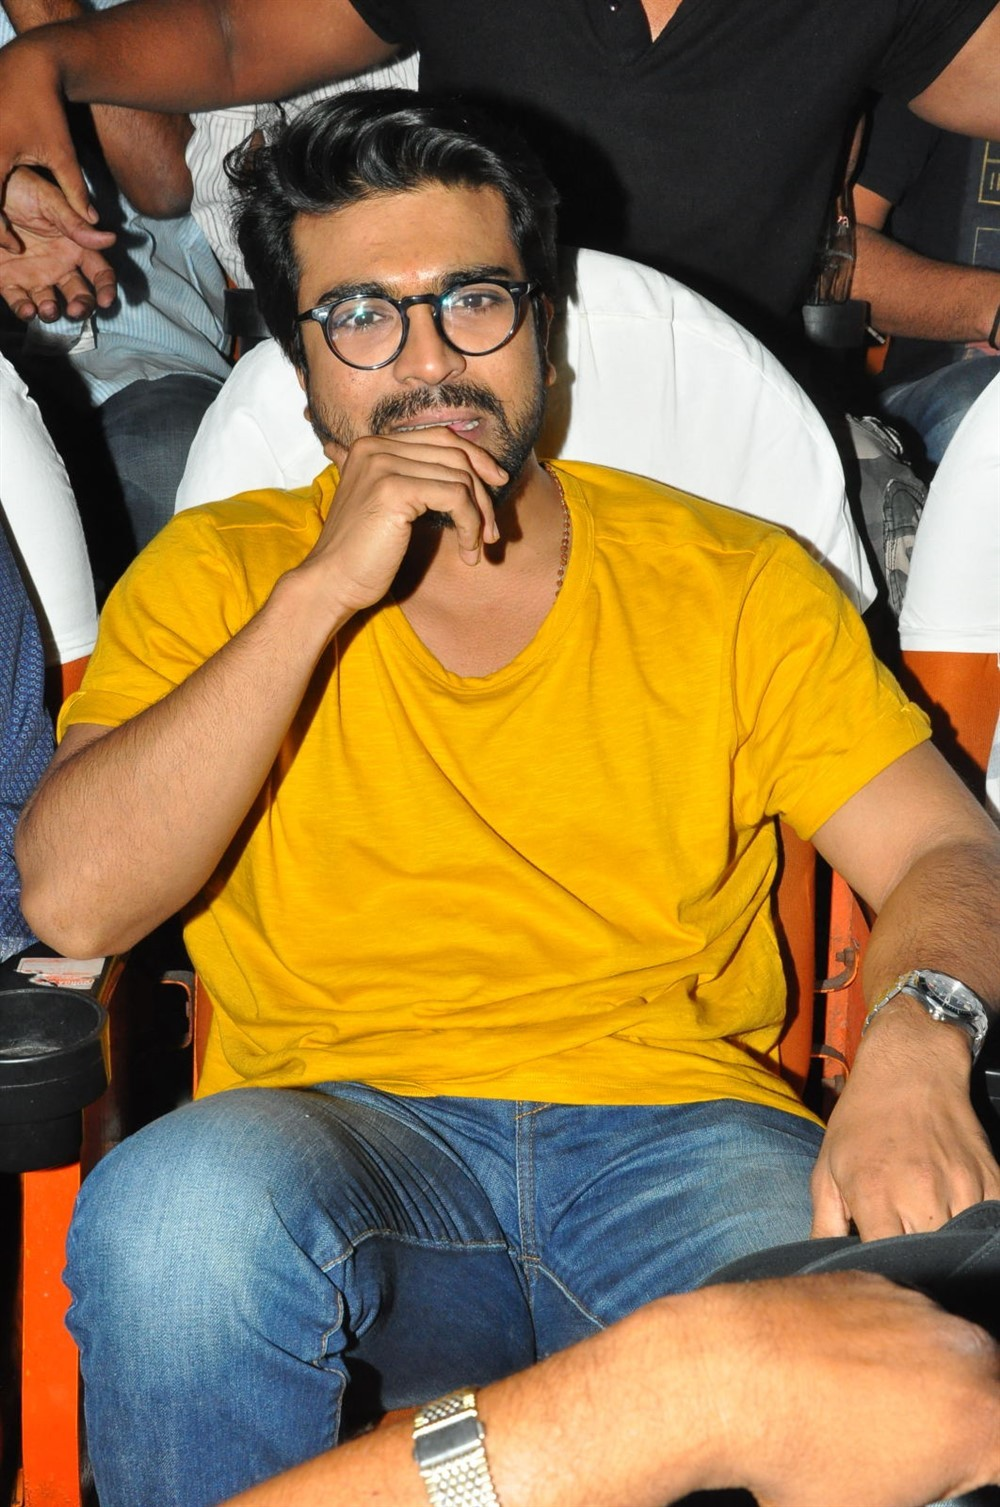 Ram charan watches rangasthalam at sudarshan theater photos images gallery 86422 for Actor watches